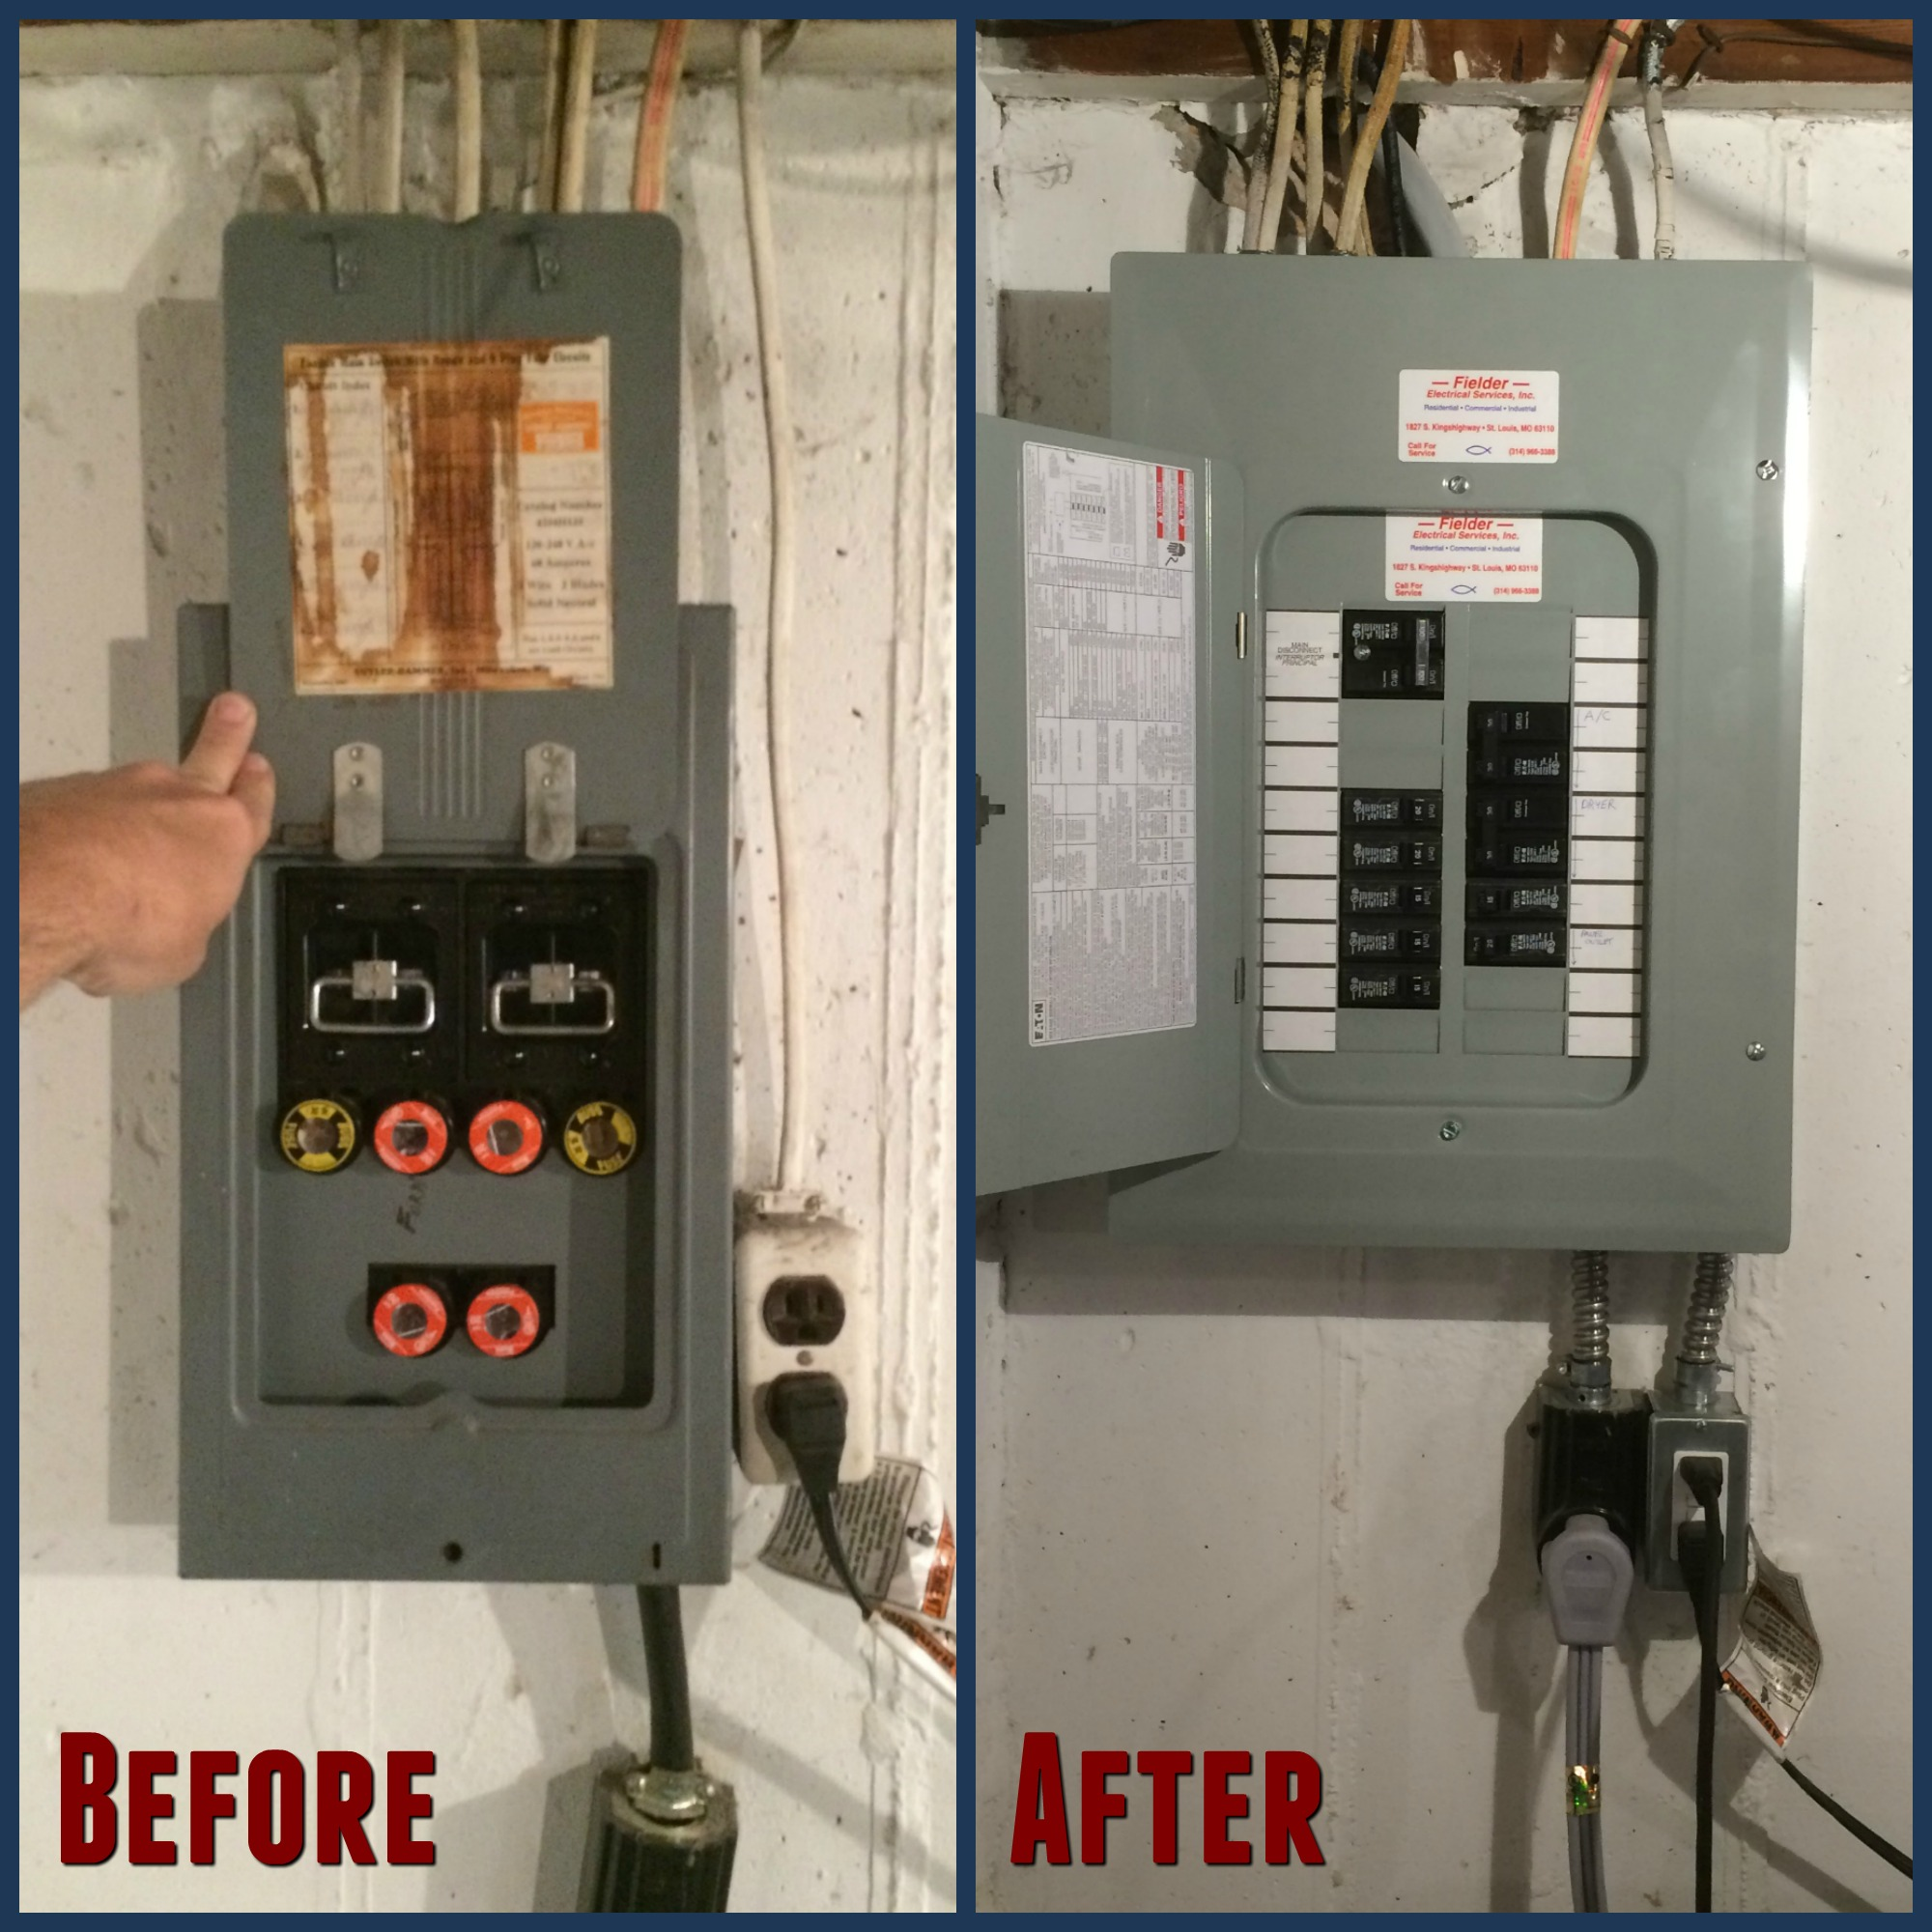 Fuse box replaced with electrical panel electrical panels fielder electrical services how to upgrade your fuse box at reclaimingppi.co